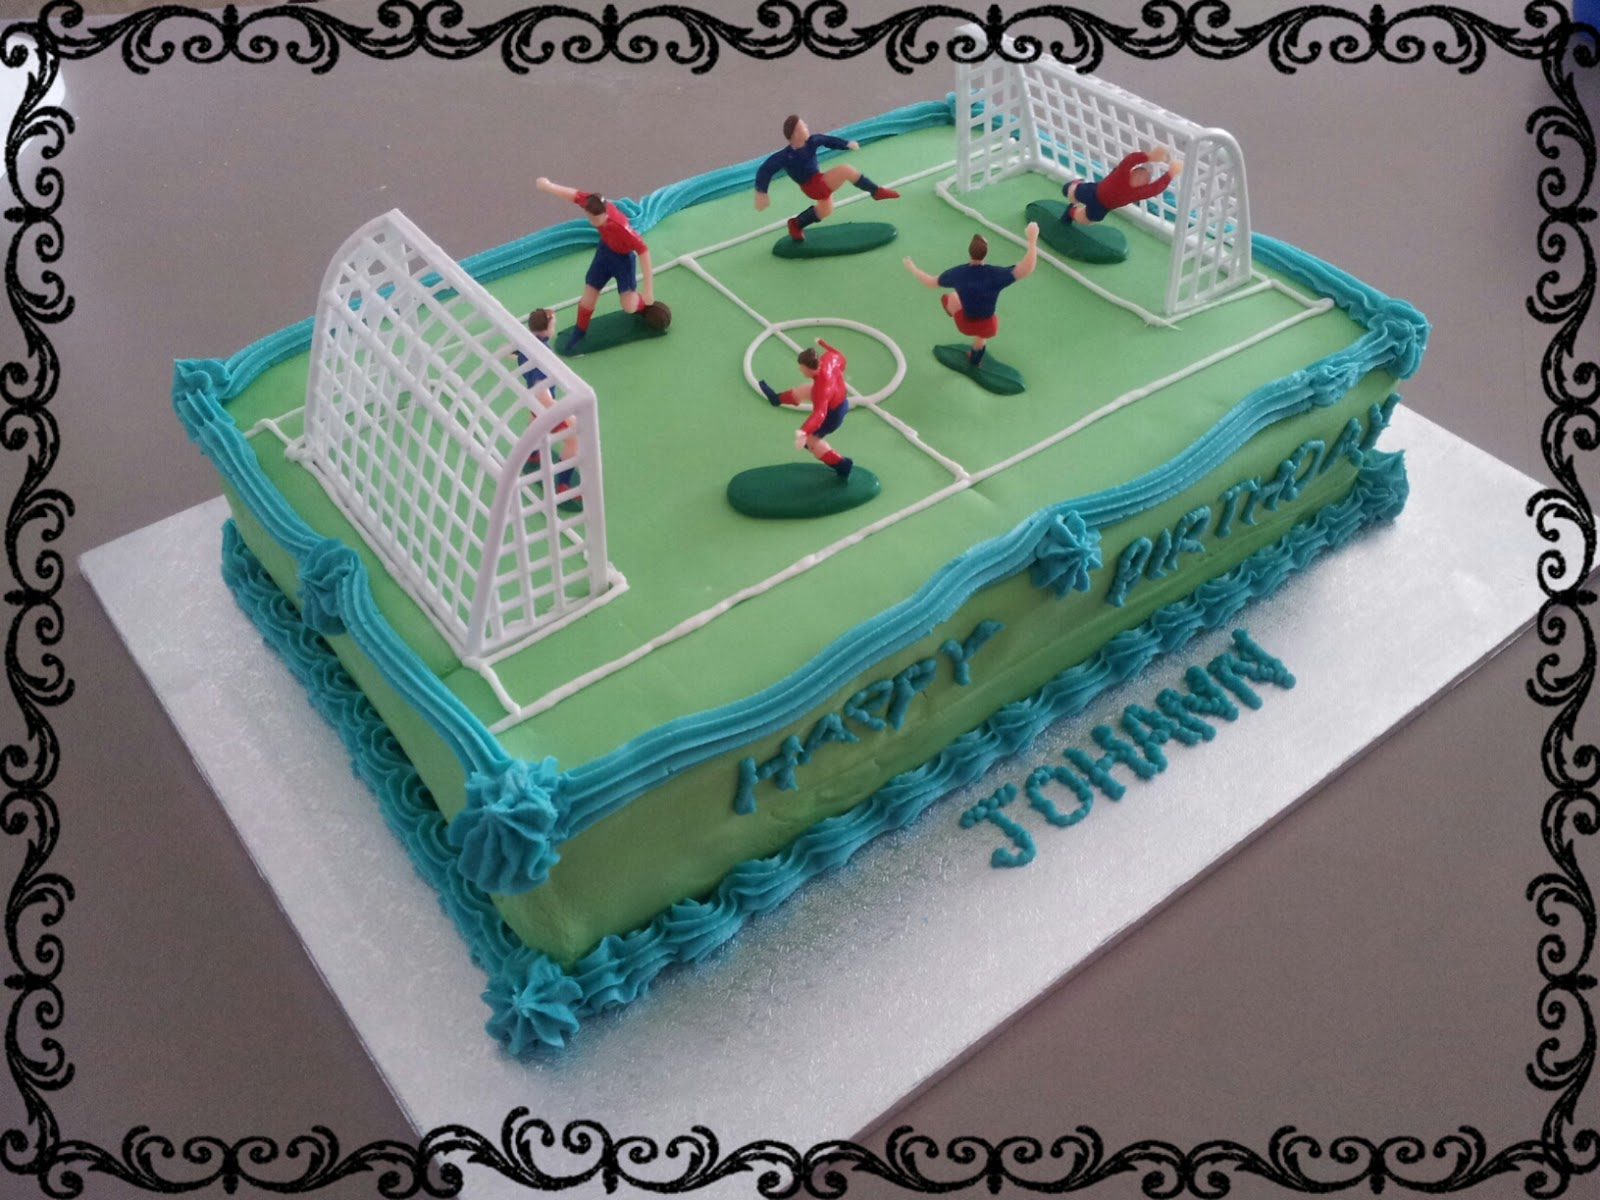 Cake Designs For 13 Year Old Boy Prezup for